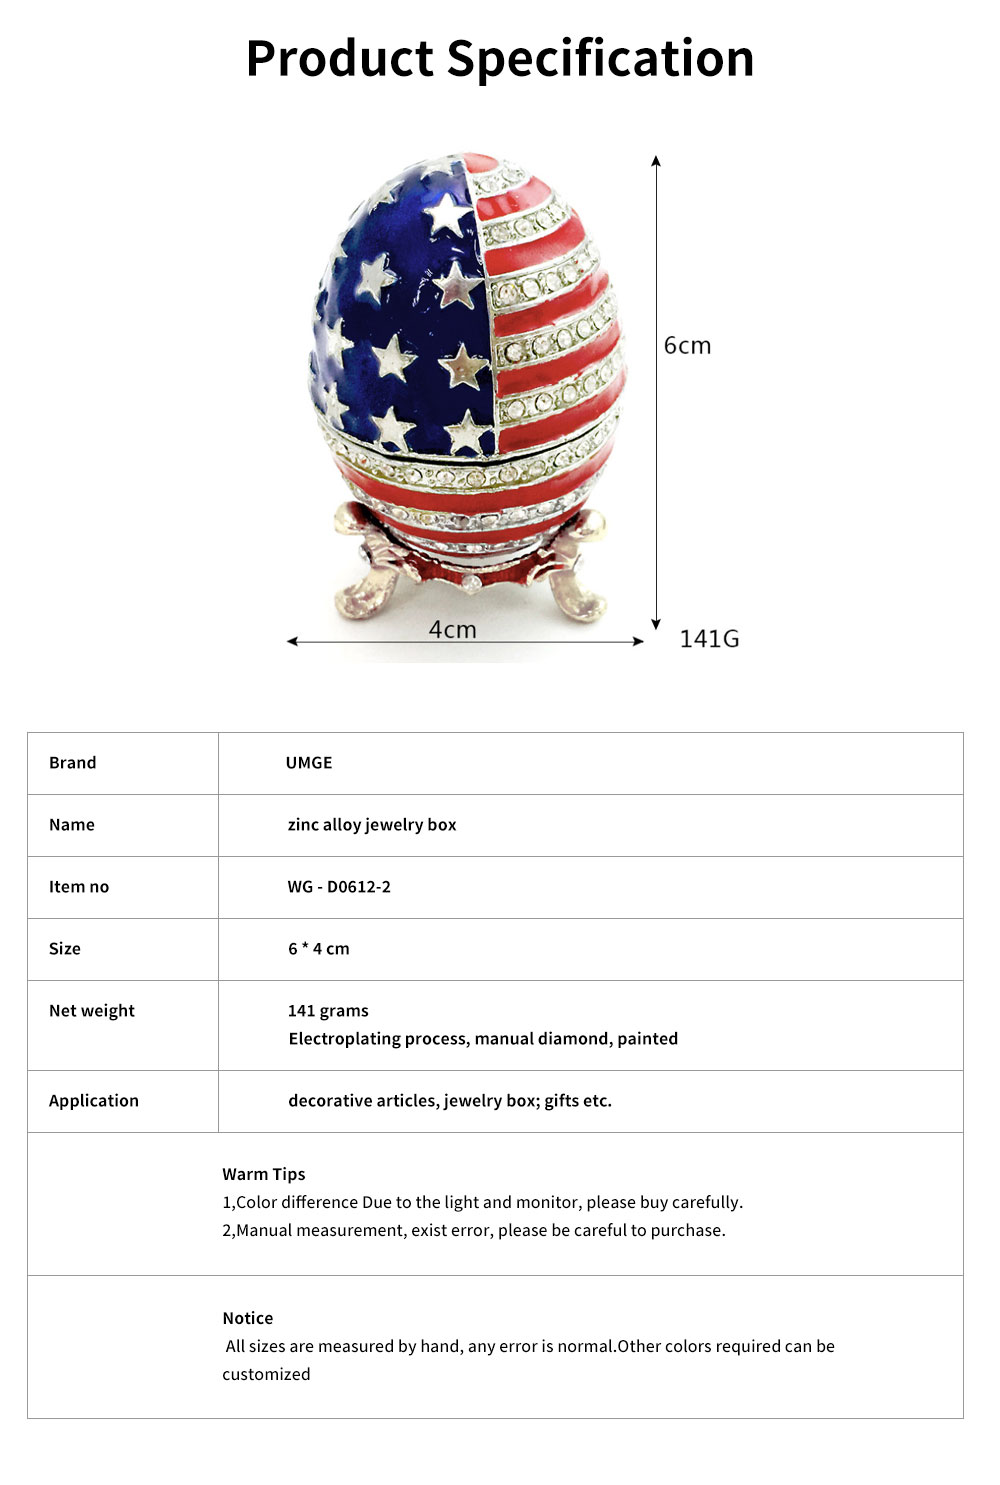 Easter Egg with American Flag Appearance, Enamelled Jewellery Case, Painted Metal Crafts Luxury Ornaments 6